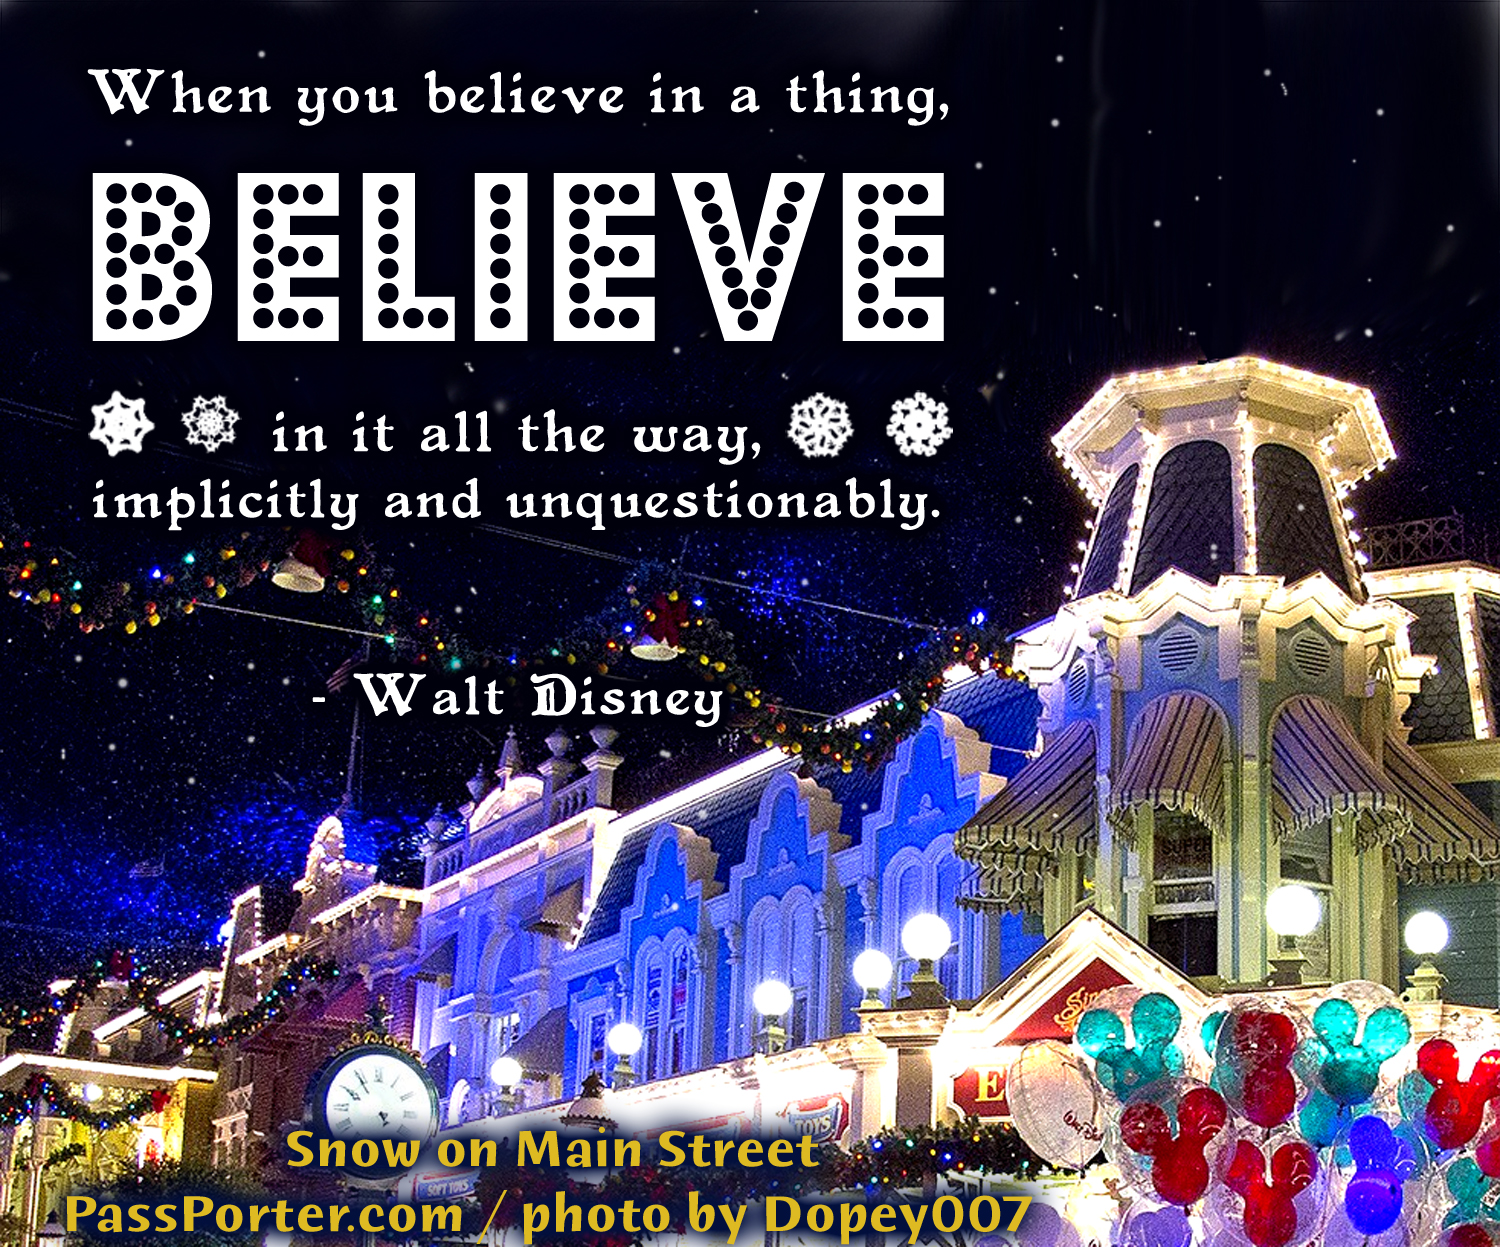 Photo illustrating waltdisneybelieve